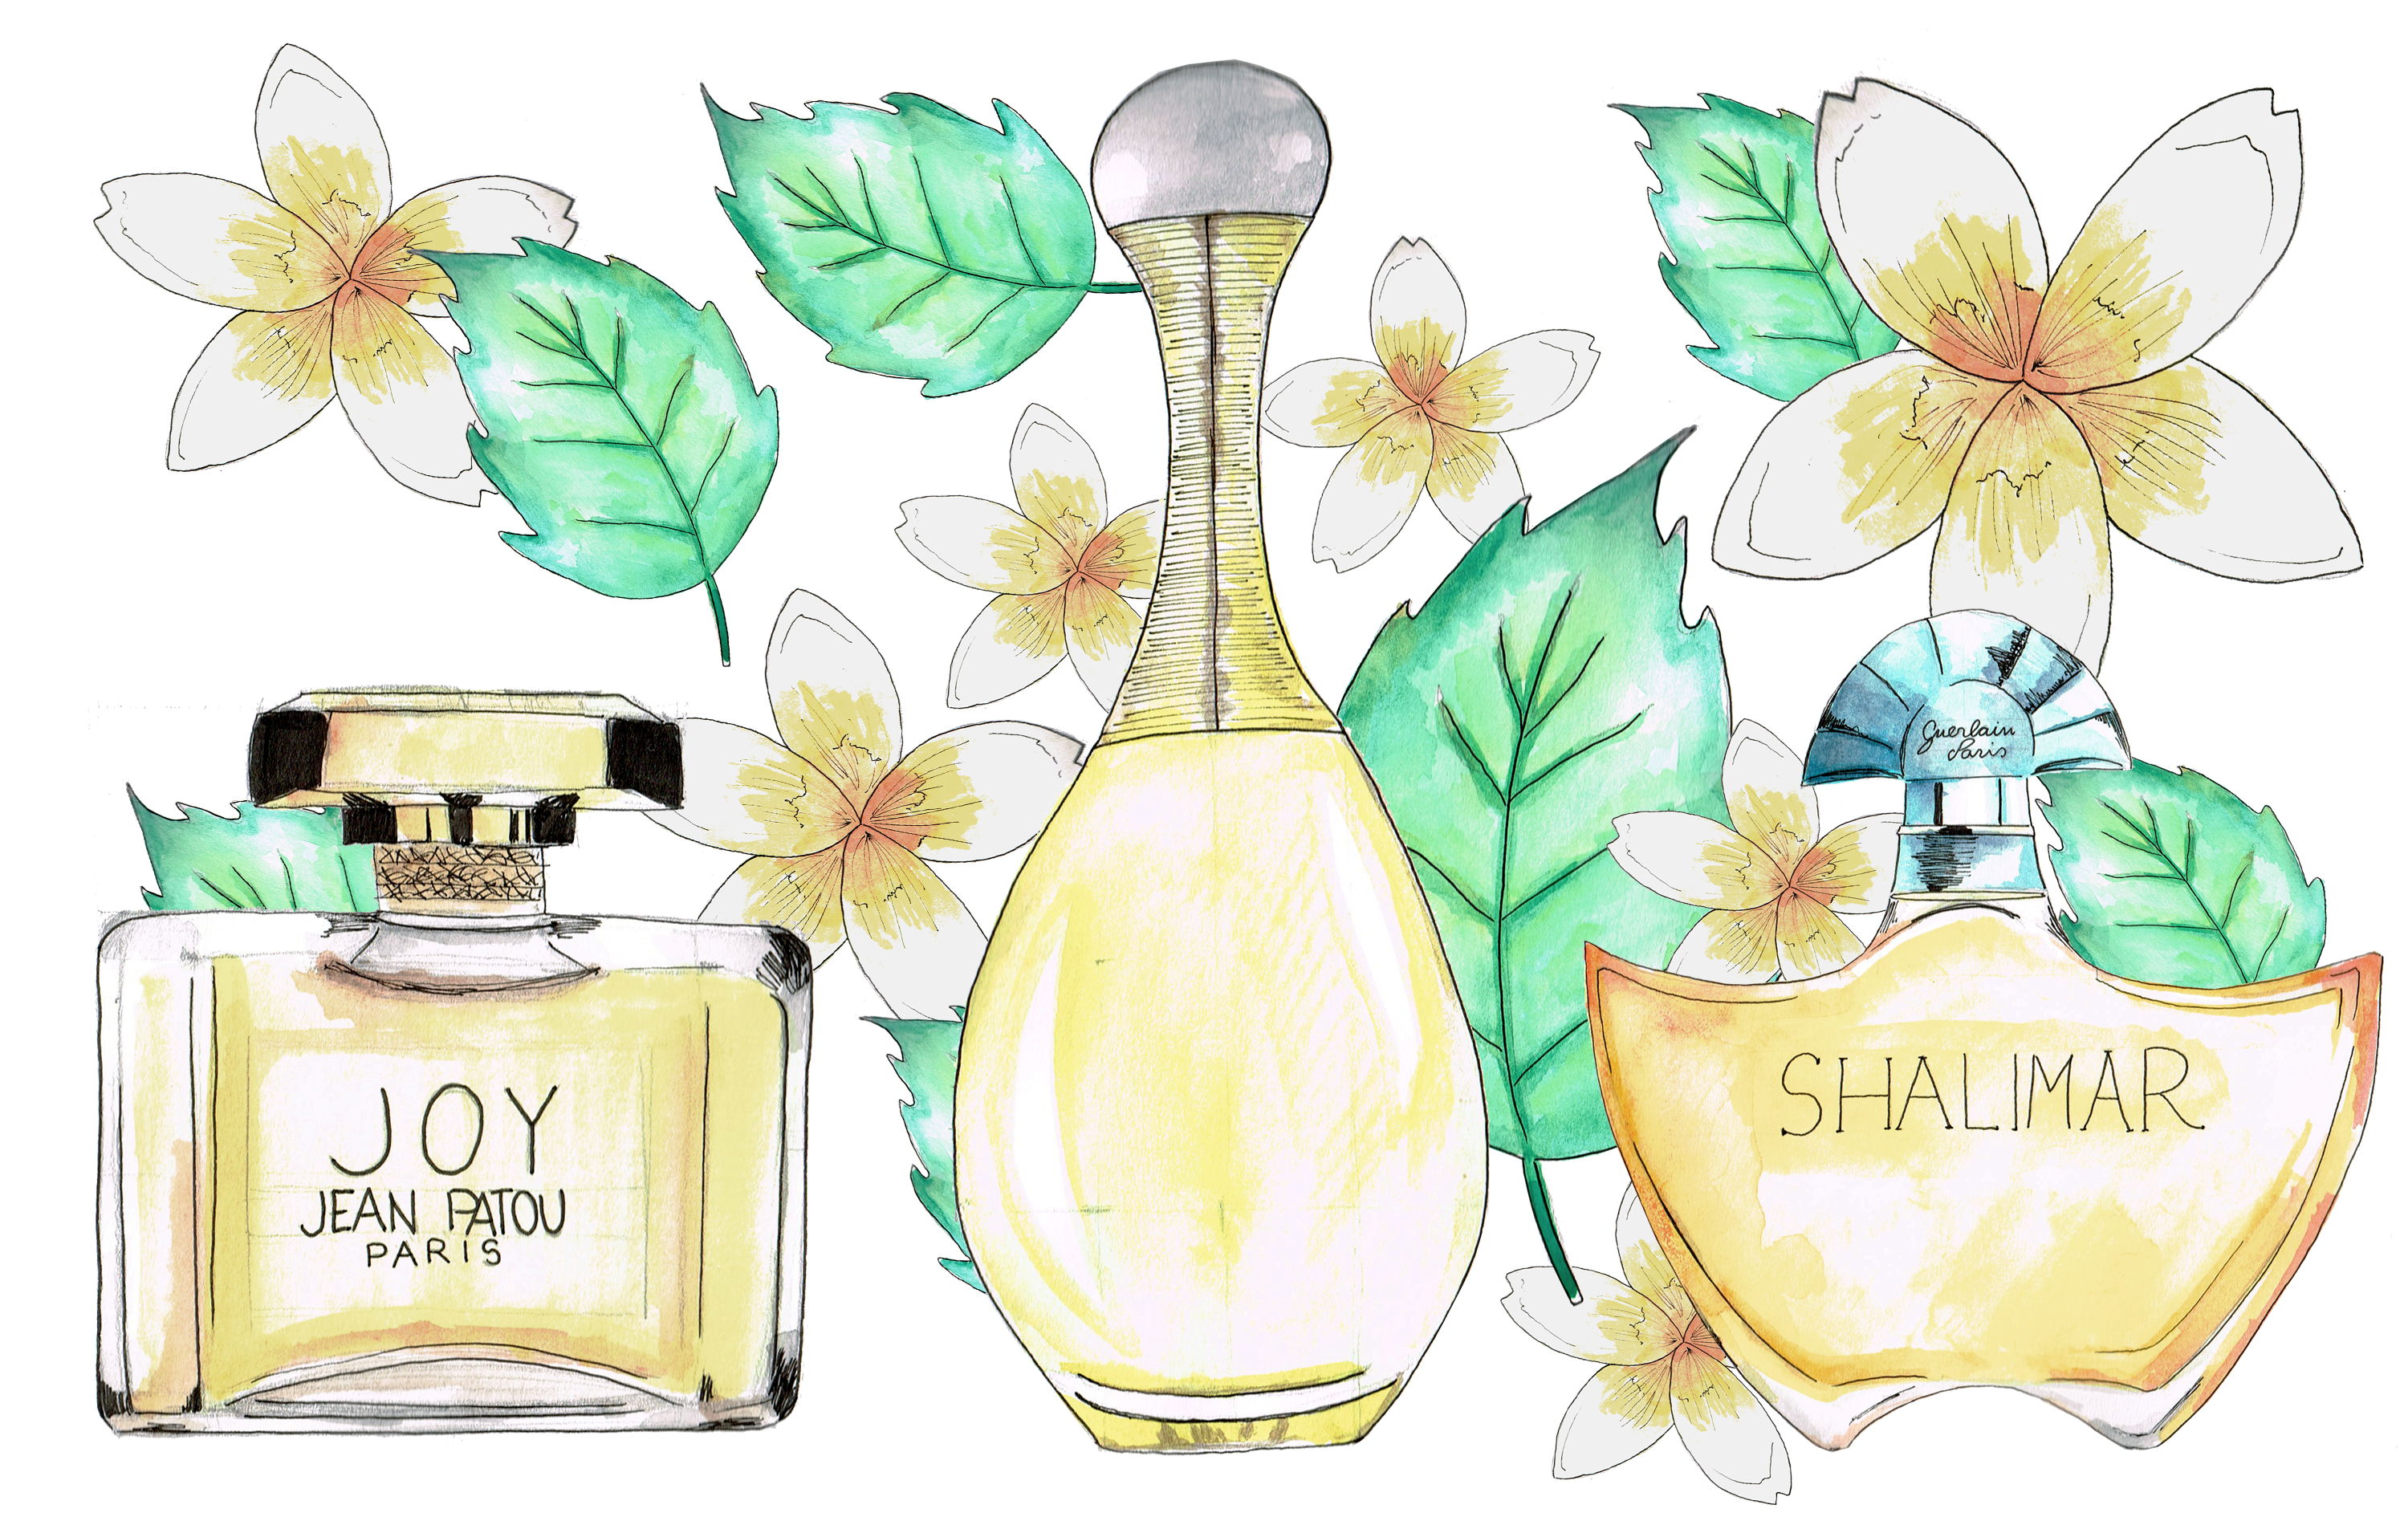 perfumes, watercolor, fashion illustration, iconic perfumes, dolce & gabanna, shalimar, guerlain, dior, Chanel, drawings, 10 most iconic perfumes, fragances, something fashion, valencia fashion blogger,